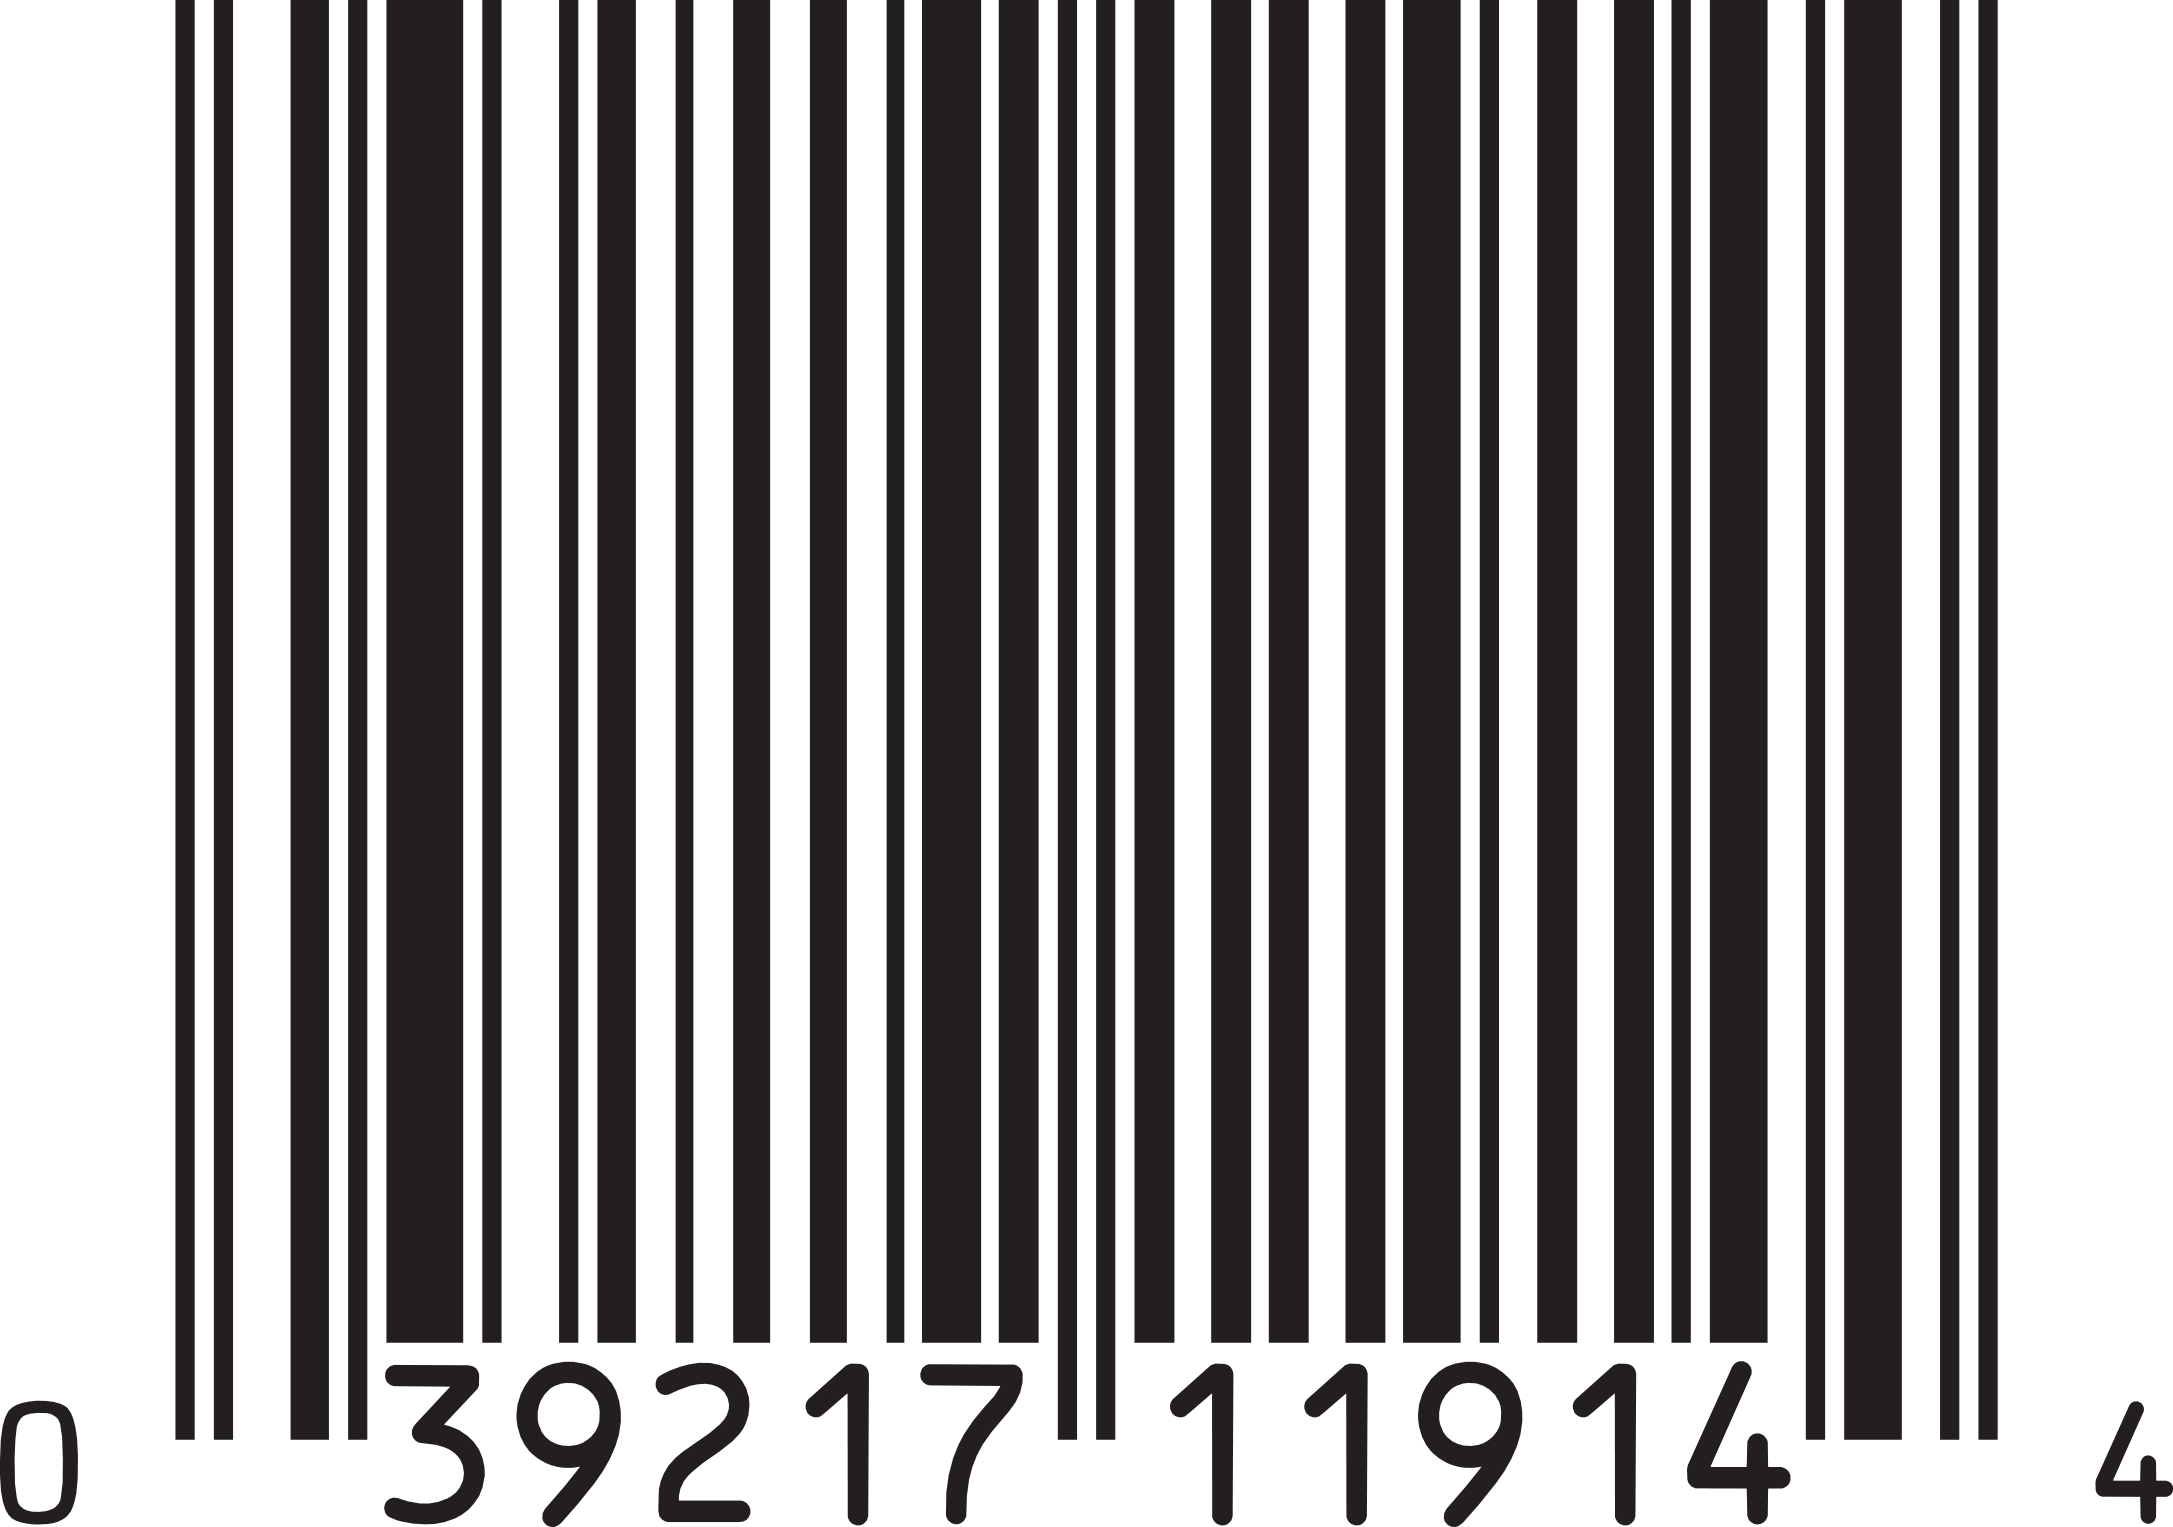 barcode transparent resolution format